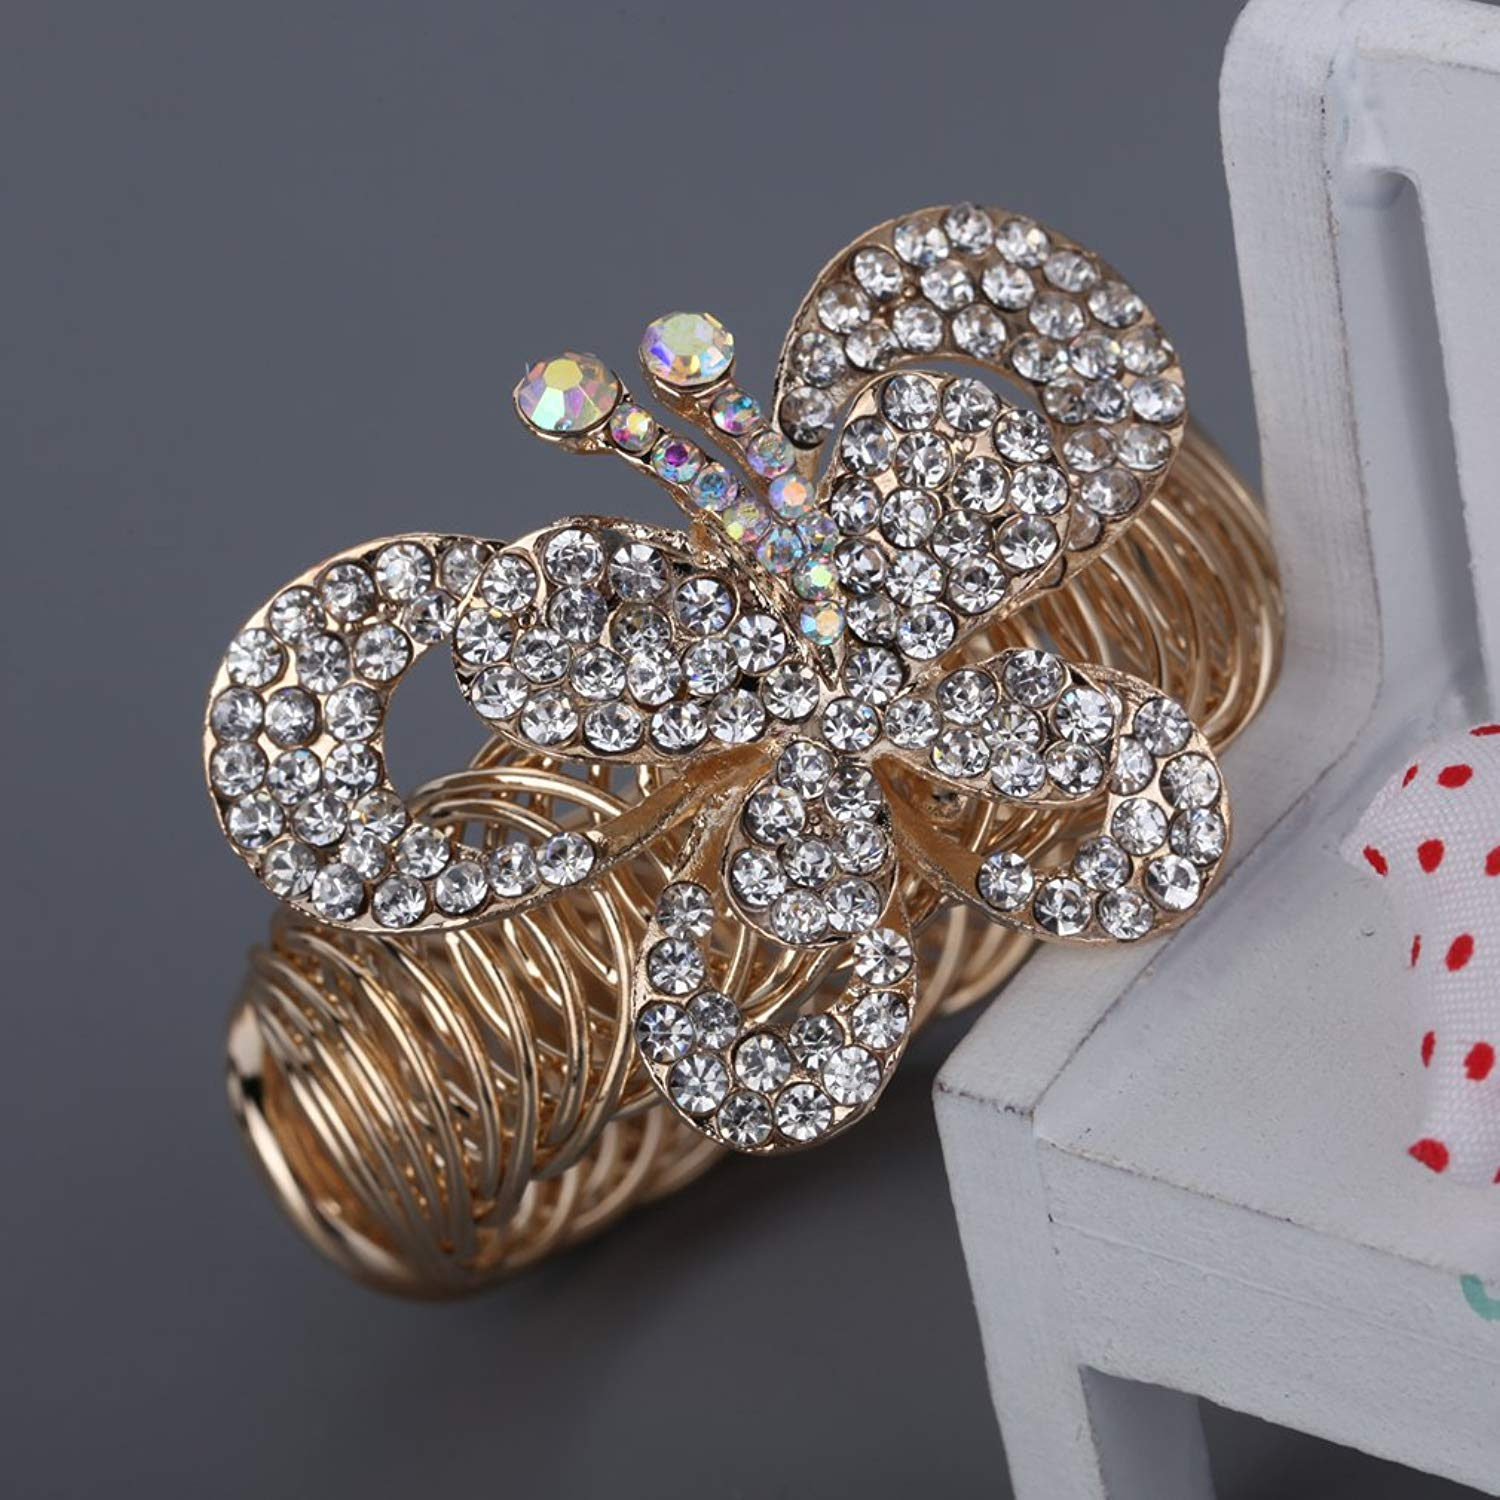 DVANIS Gold Plated Crystal Vivid Butterfly Shaple Bracelet Gifts Ideas